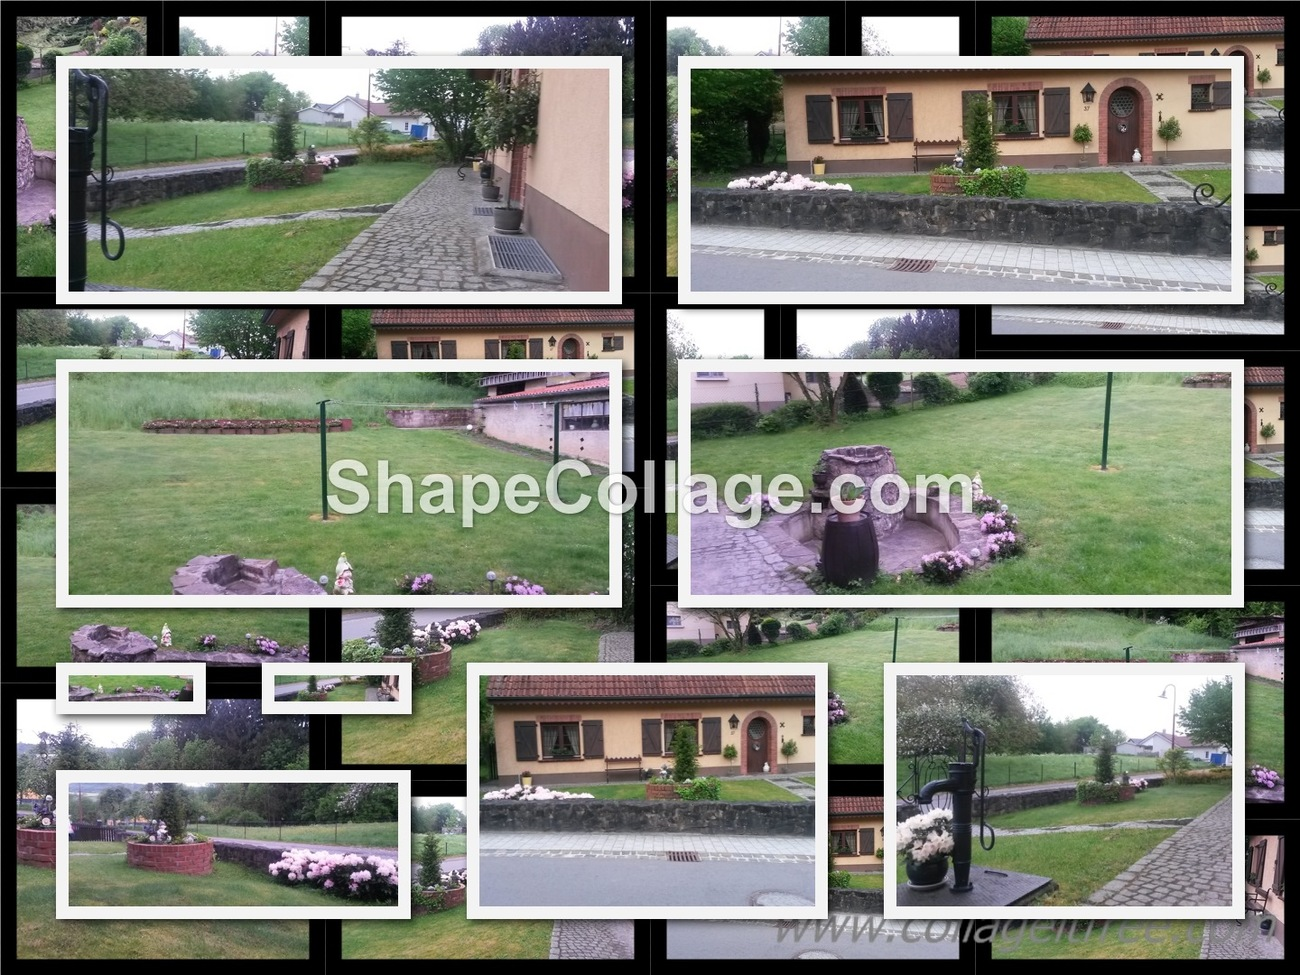 House Collage 2 by renecyberdoc